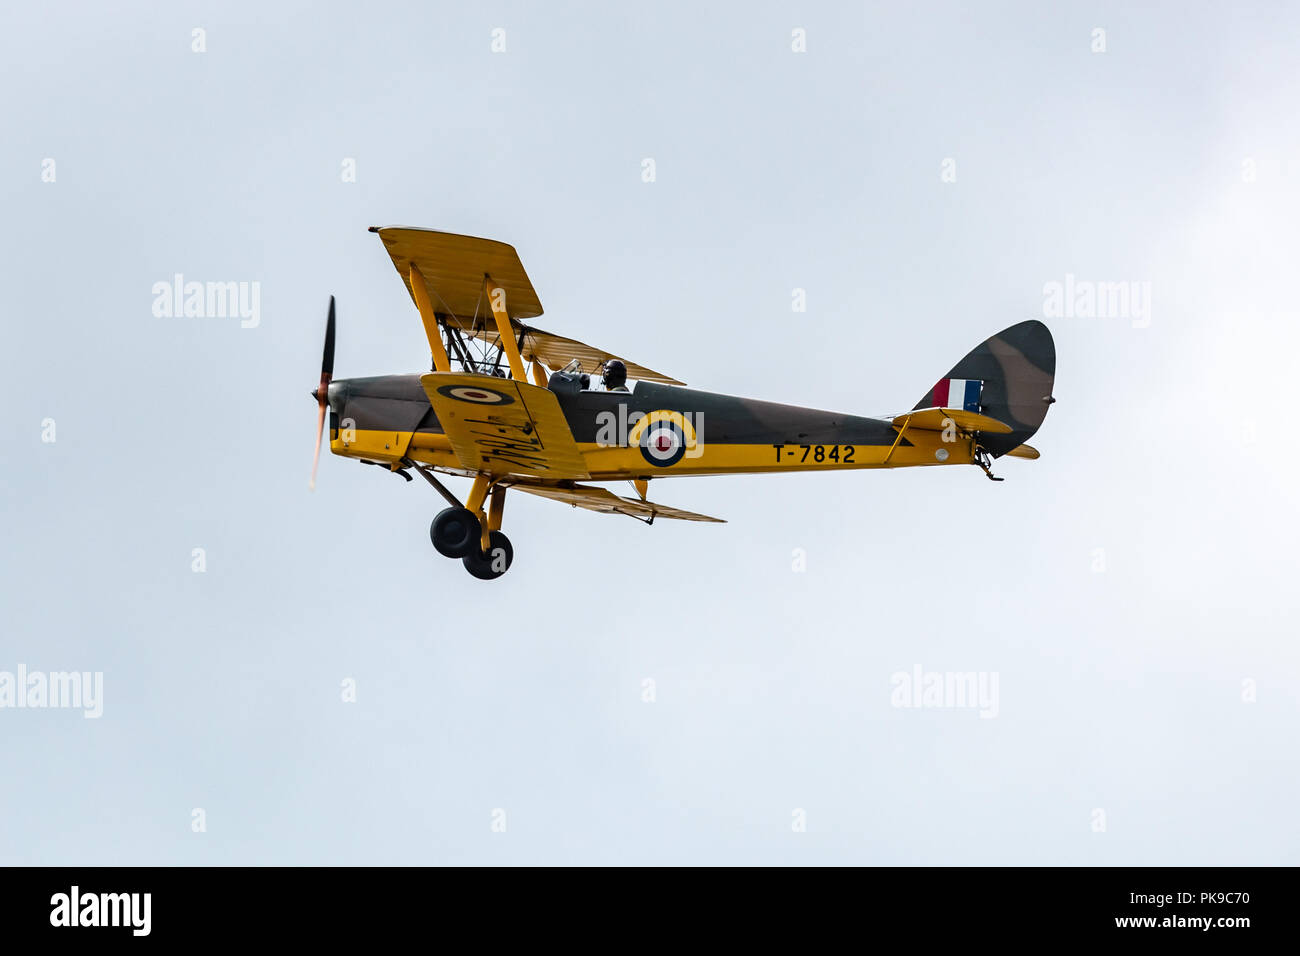 The De Havilland DH82 Tiger Moth, a safe, reliable and cheap biplane for training pilots for World War Two - Stock Image